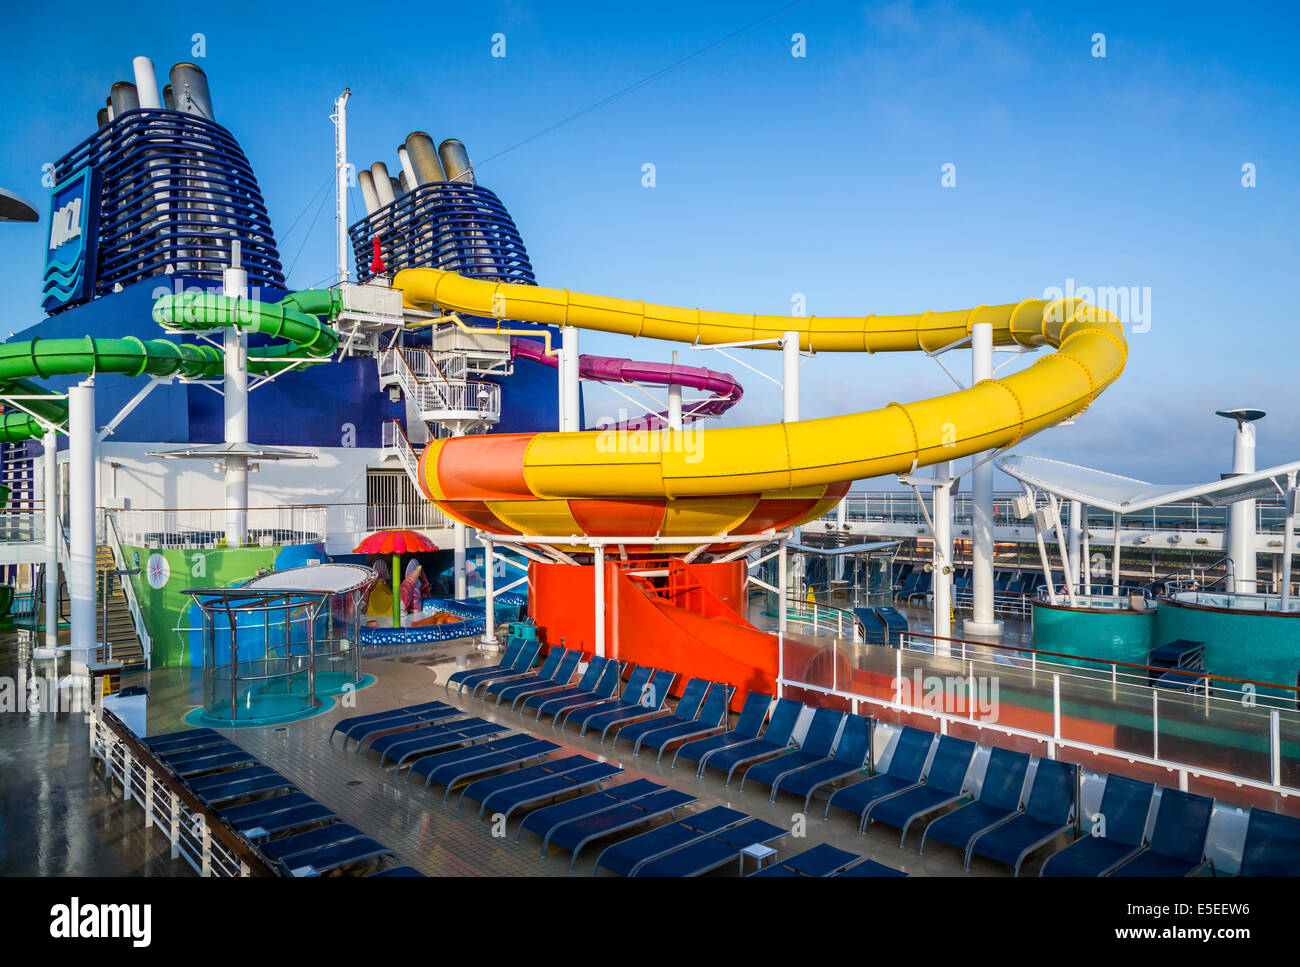 Water Slide On Cruise Ship Stock Photos Water Slide On Cruise - Roller coaster on a cruise ship